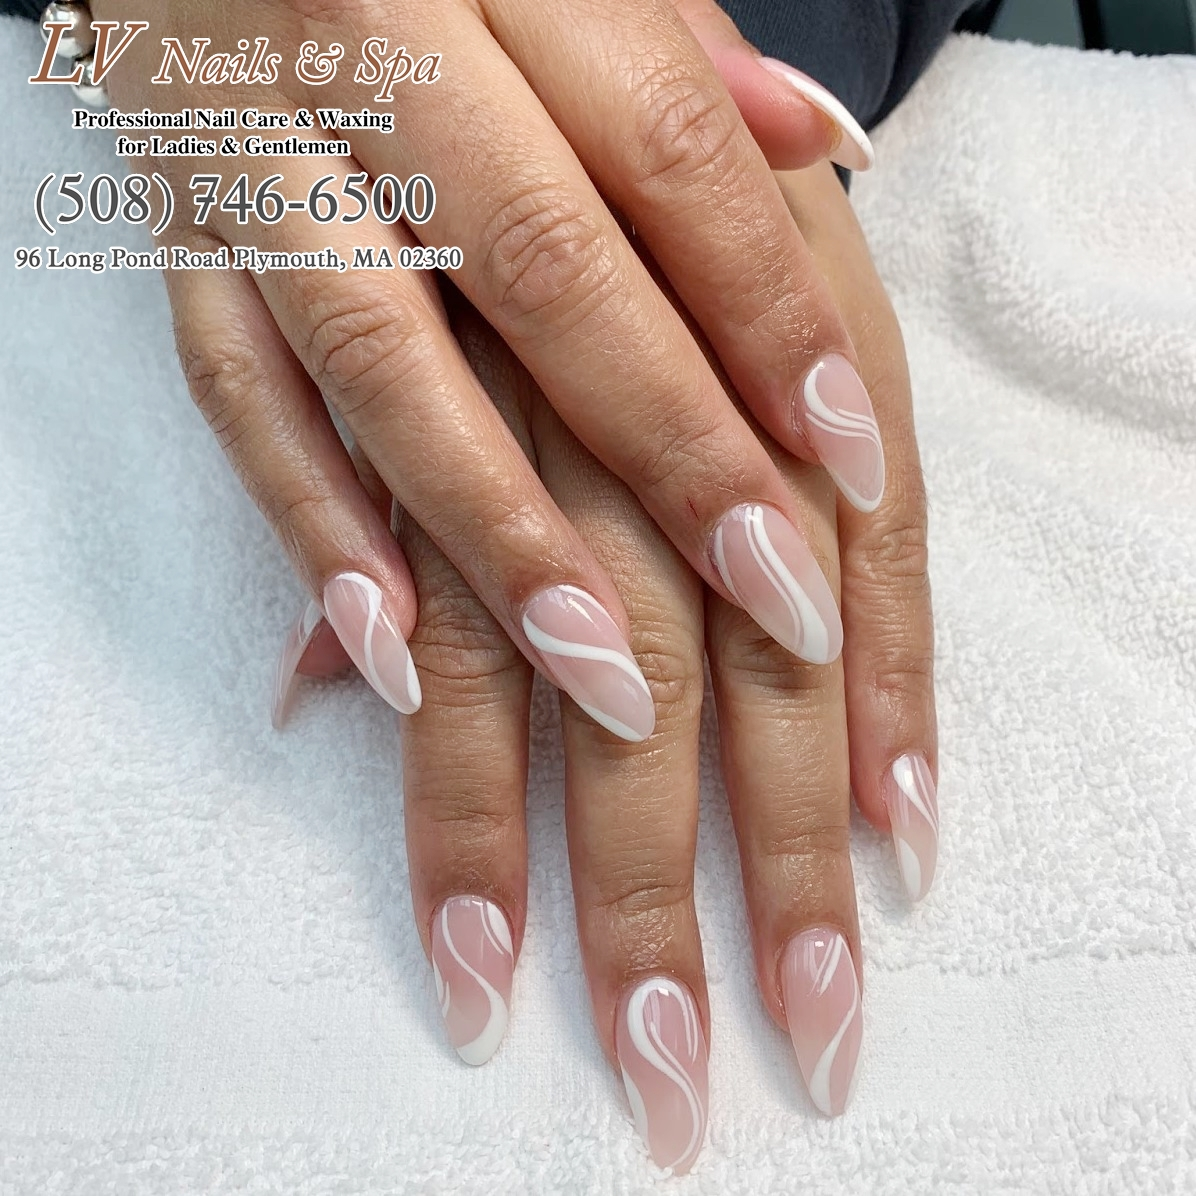 If you love this shellac nails, just call us to transform your nails